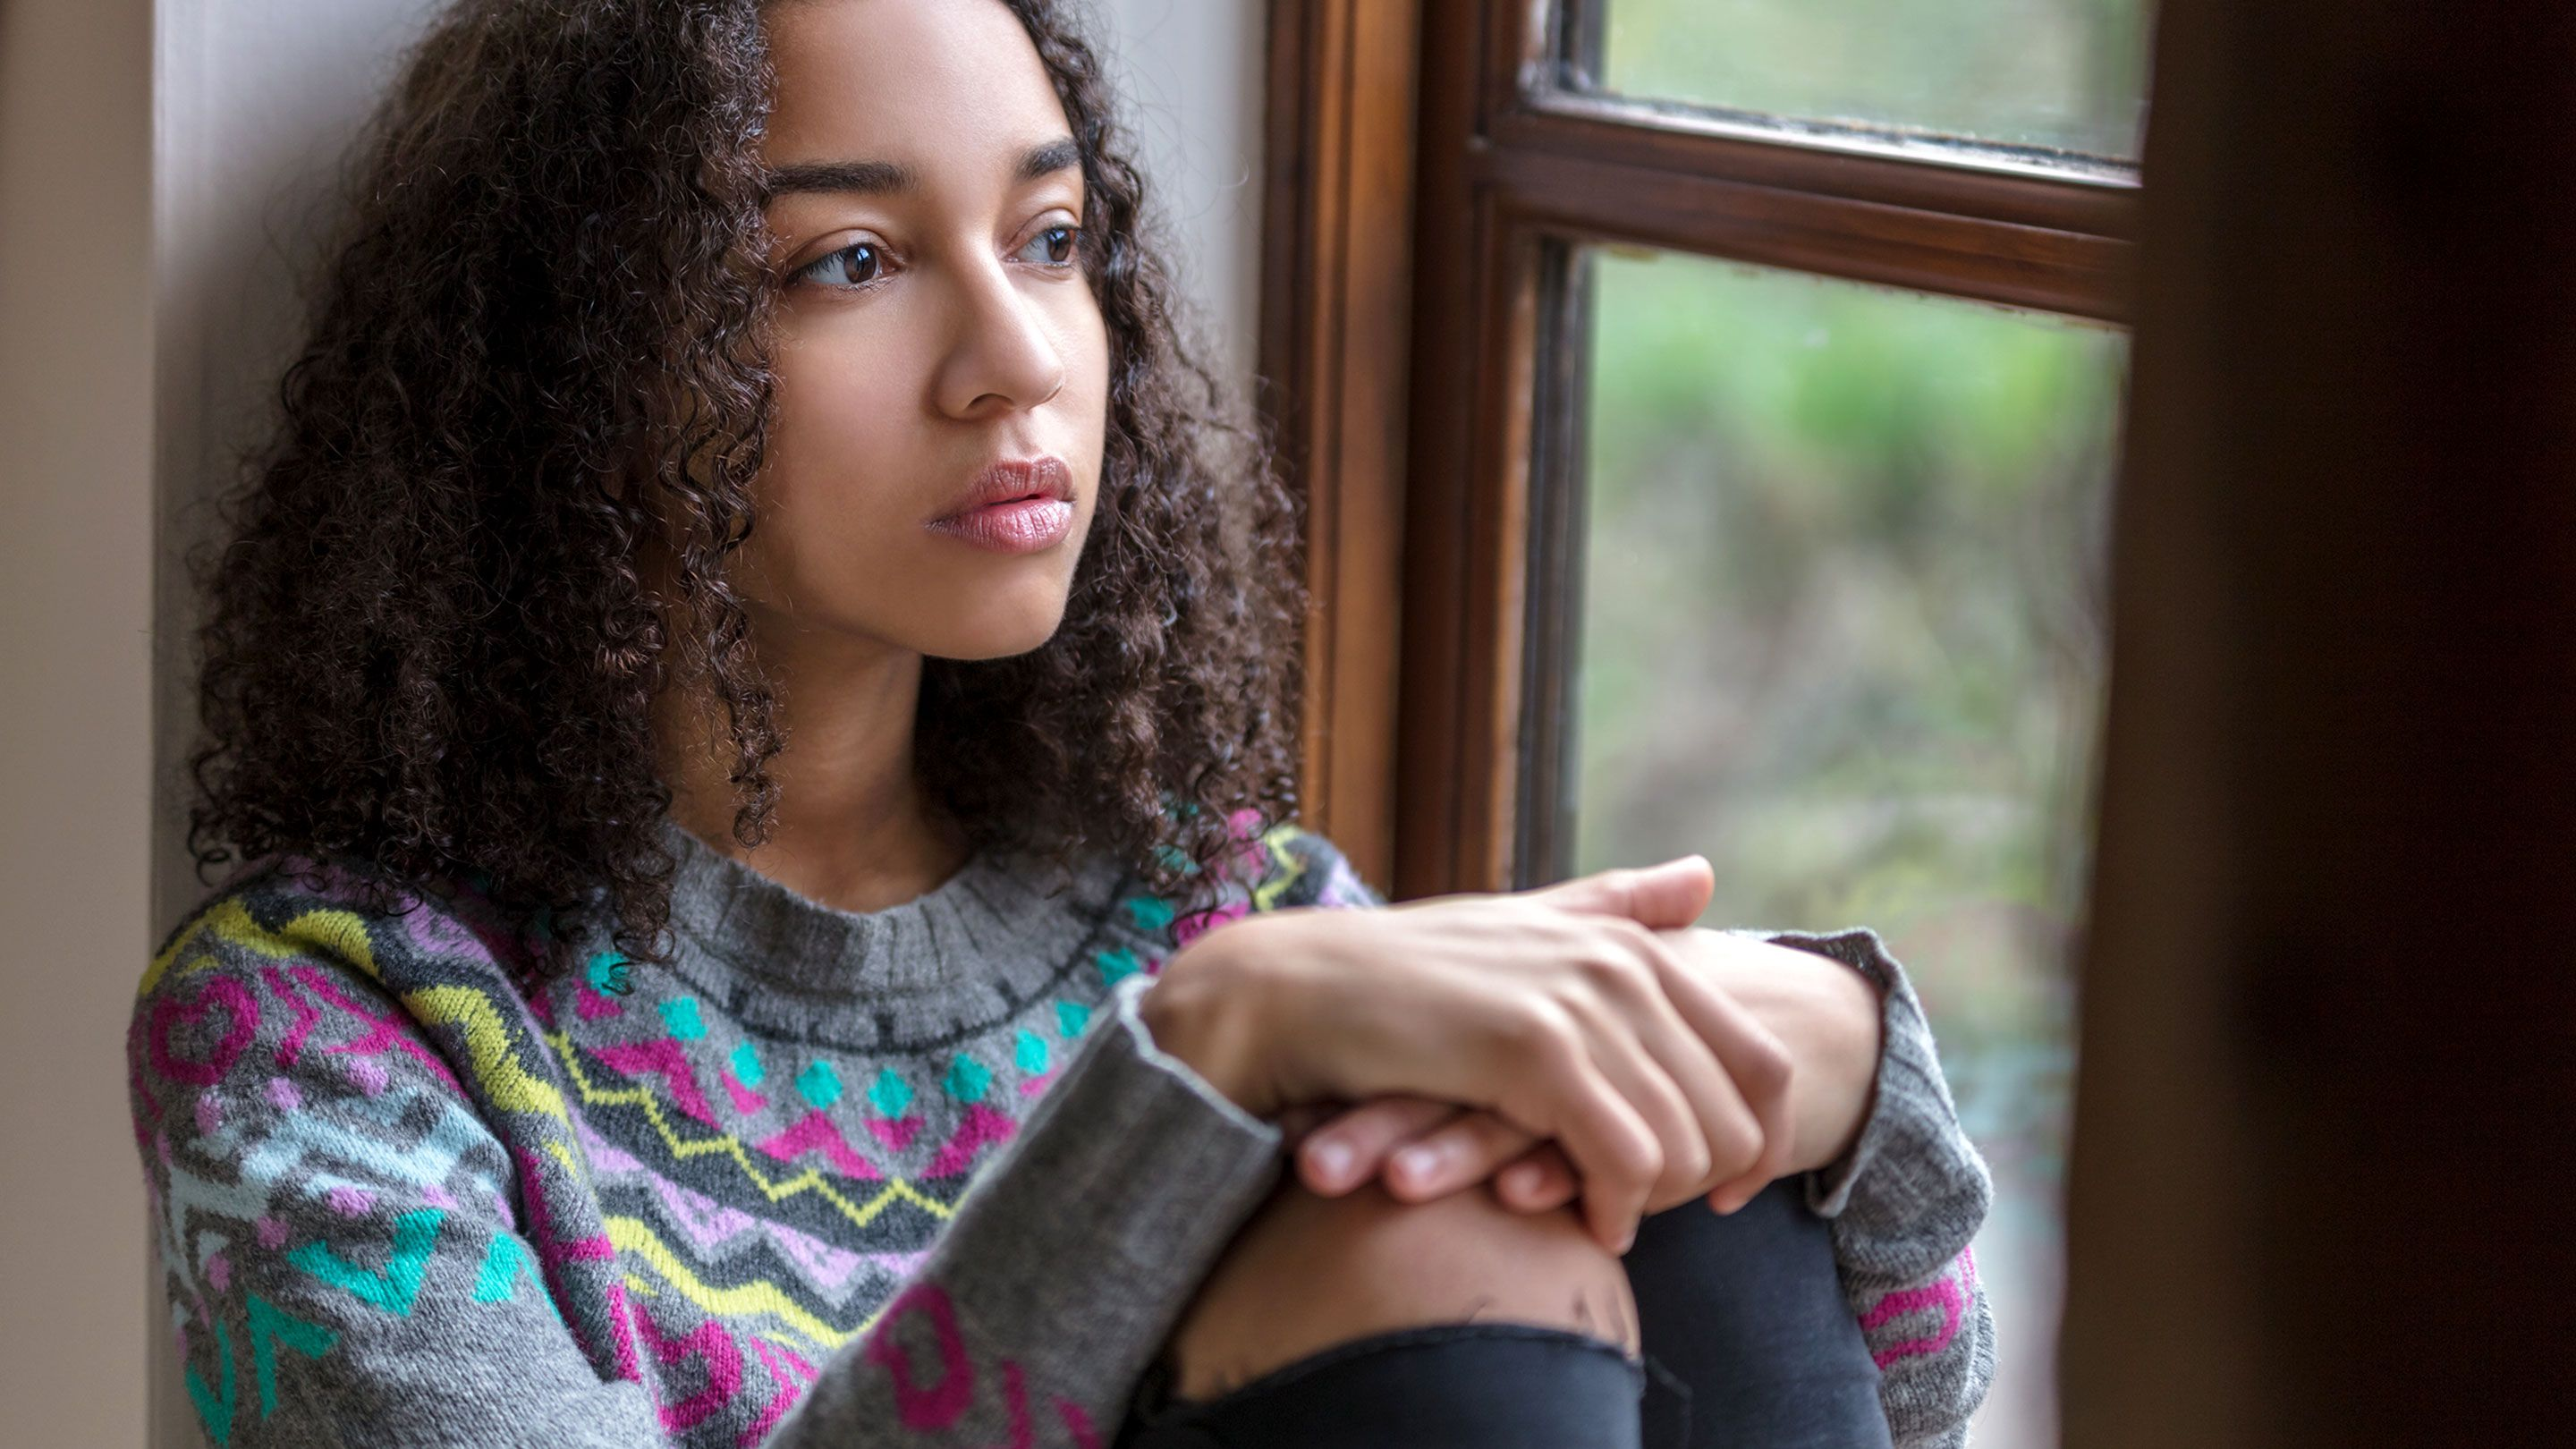 A black female high school student looks out a window